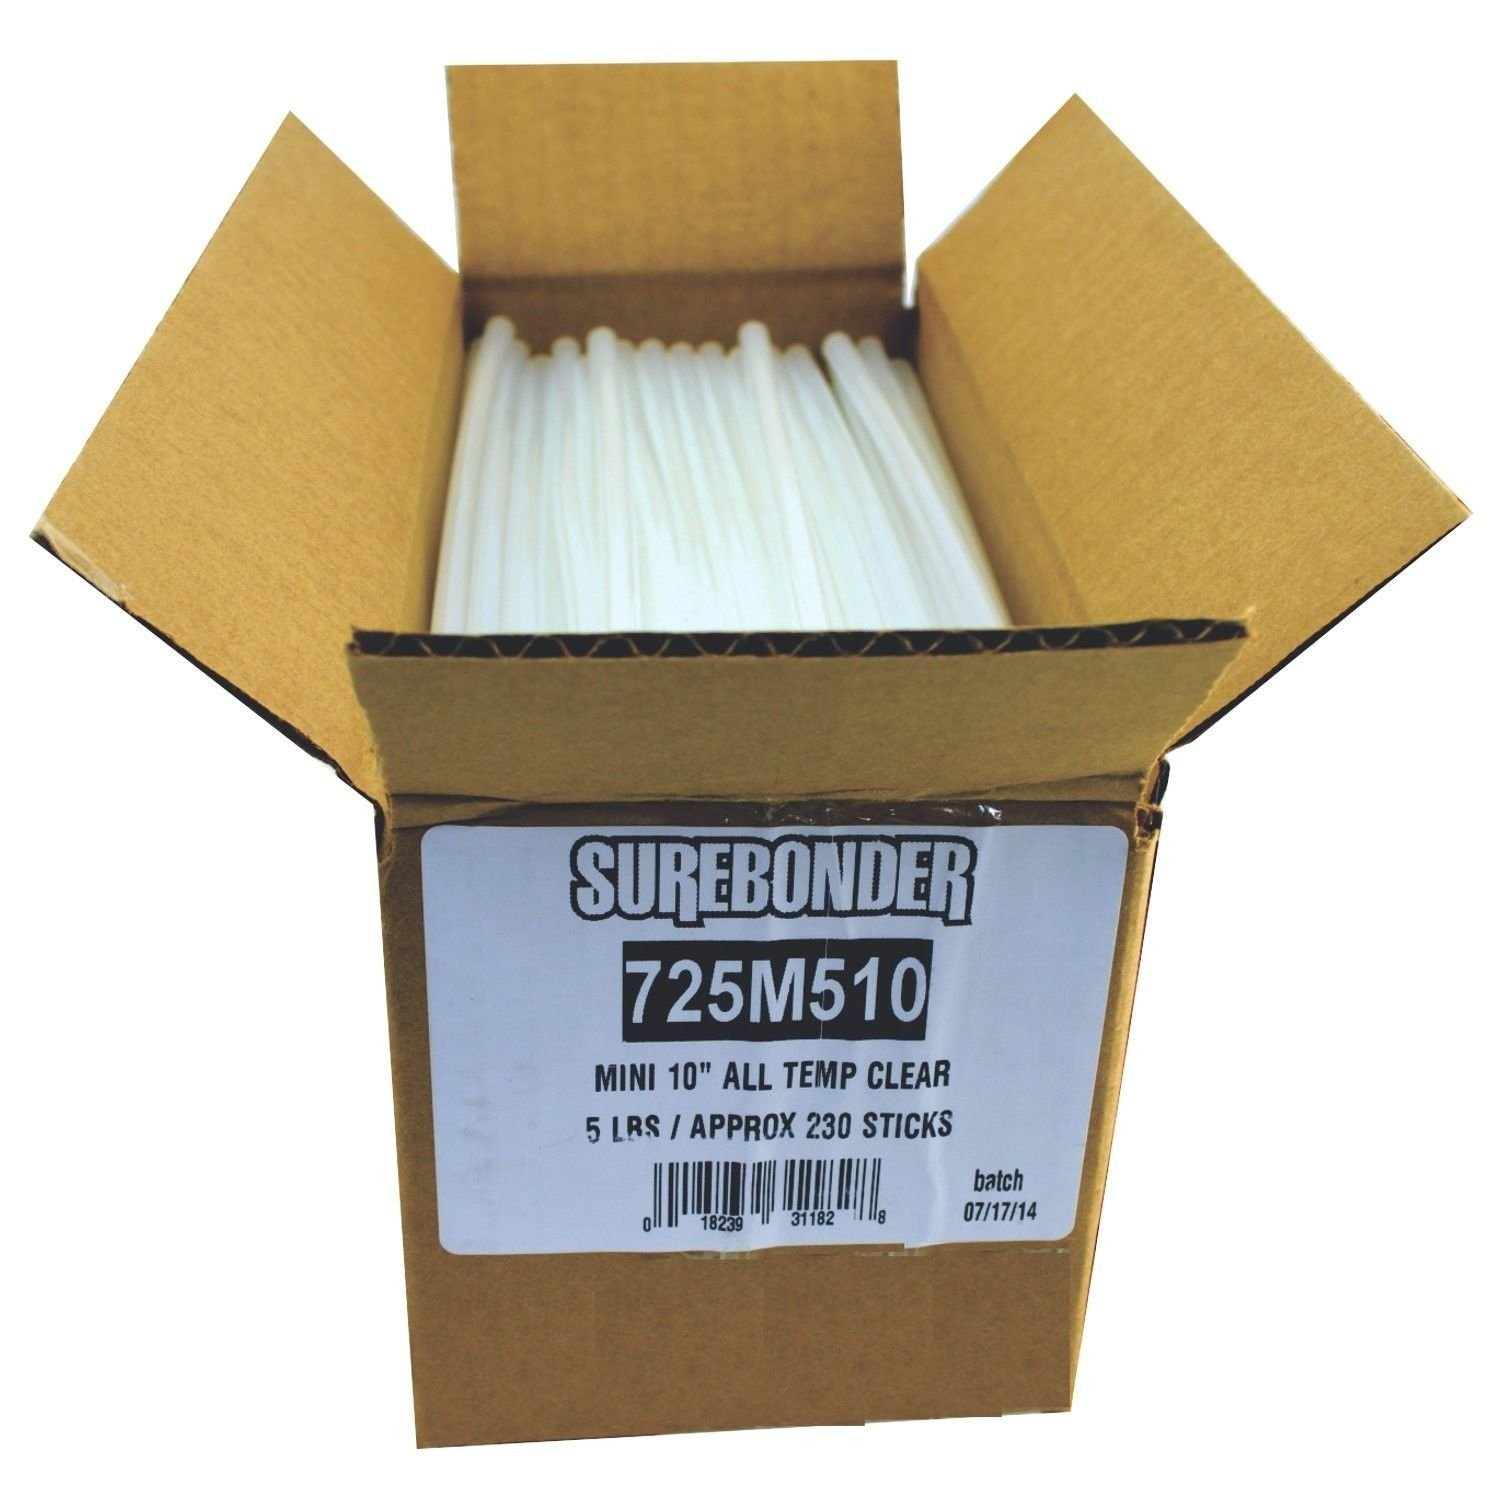 Surebonder 725M510 Mini All Temperature Hot Melt Glue Sticks, 10-Inch 5-lbs